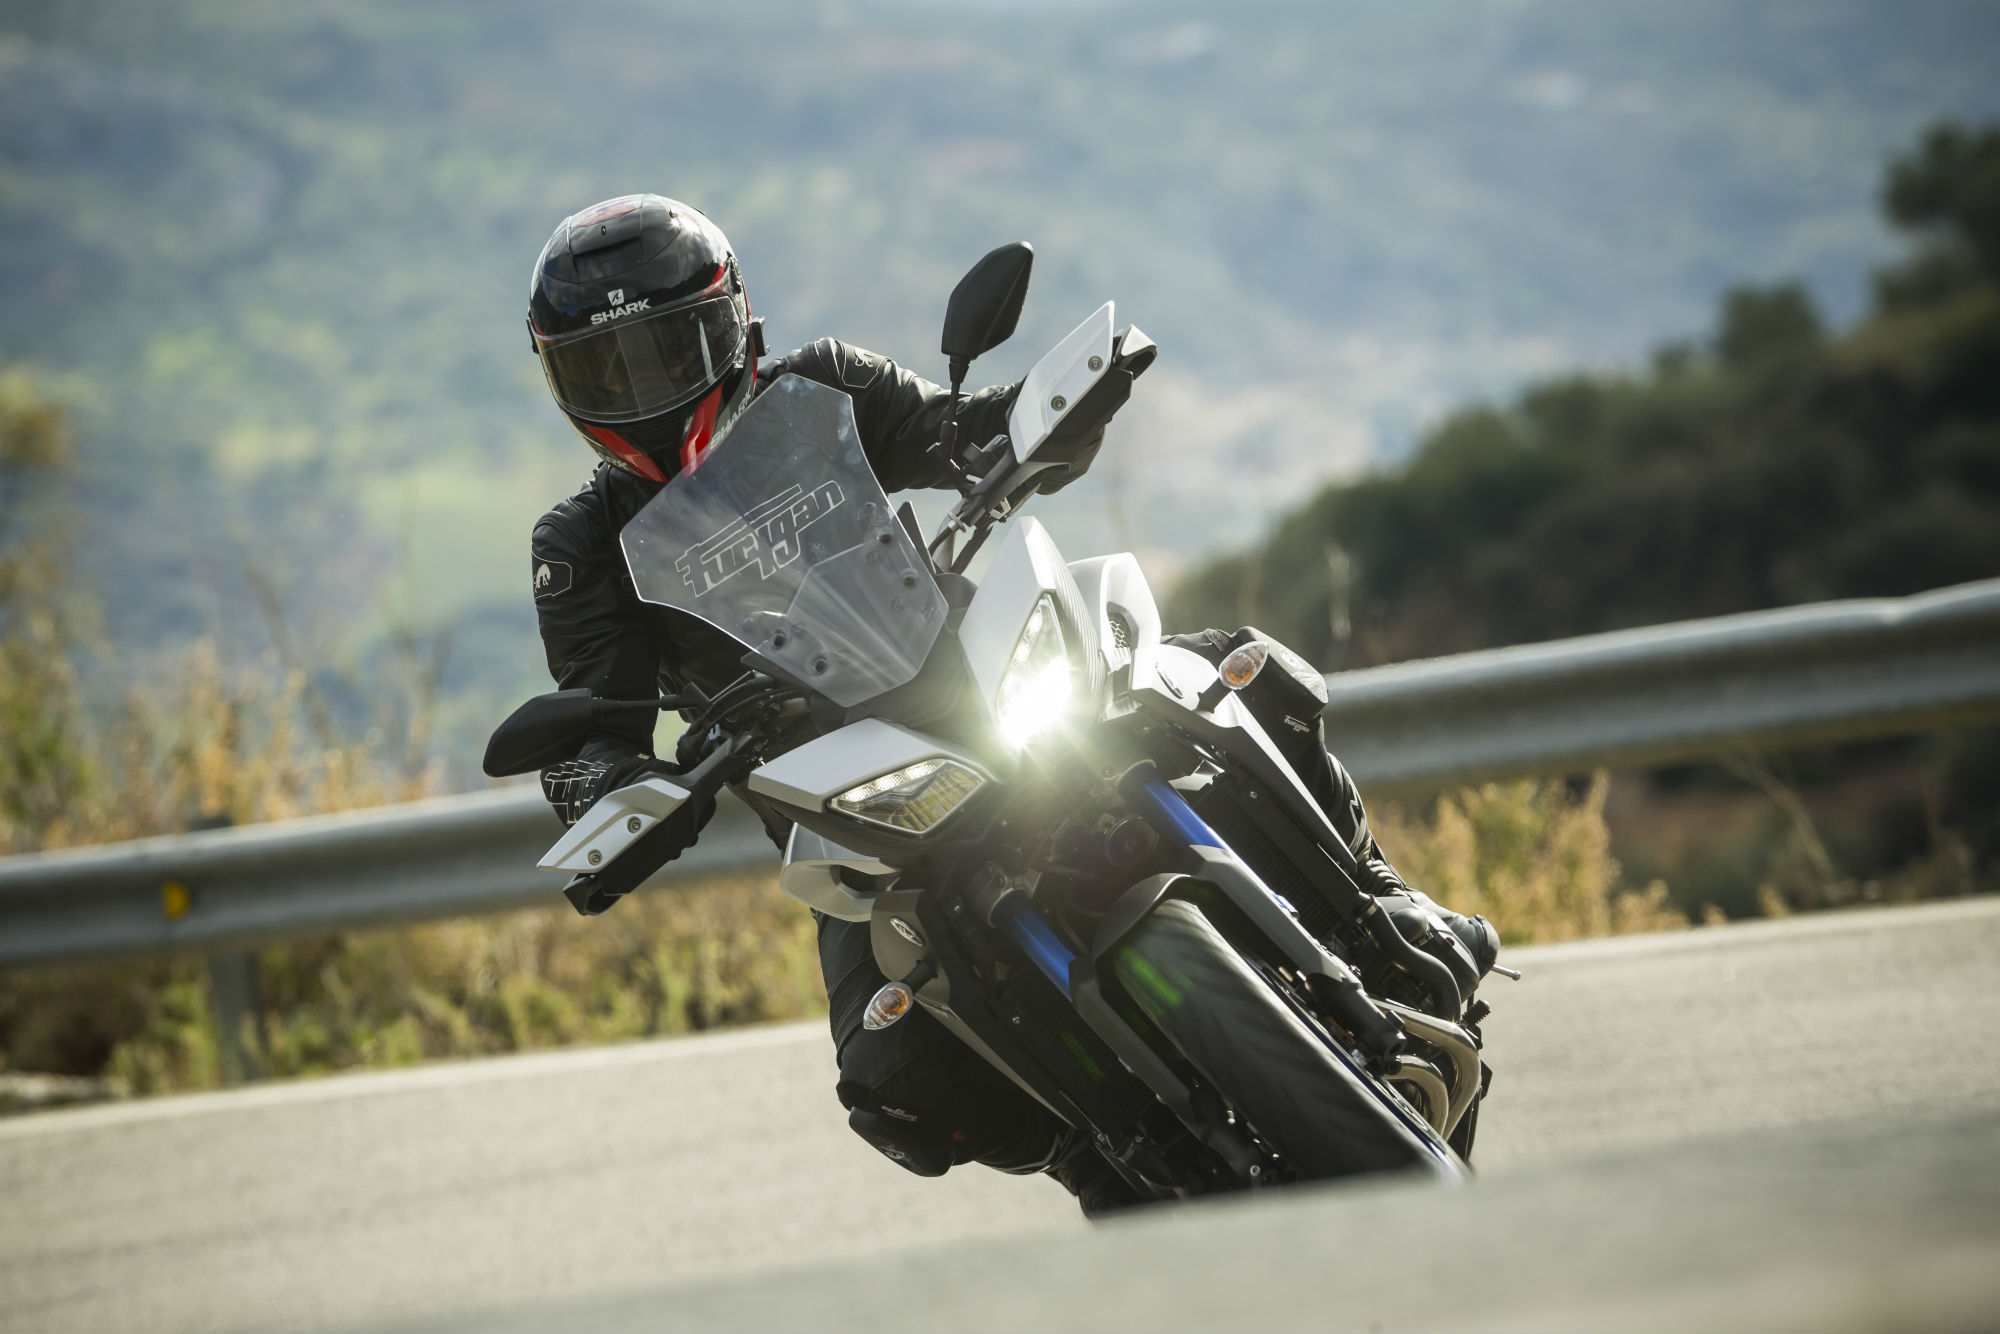 First Ride Yamaha Mt 09 Tracer Review Visordown